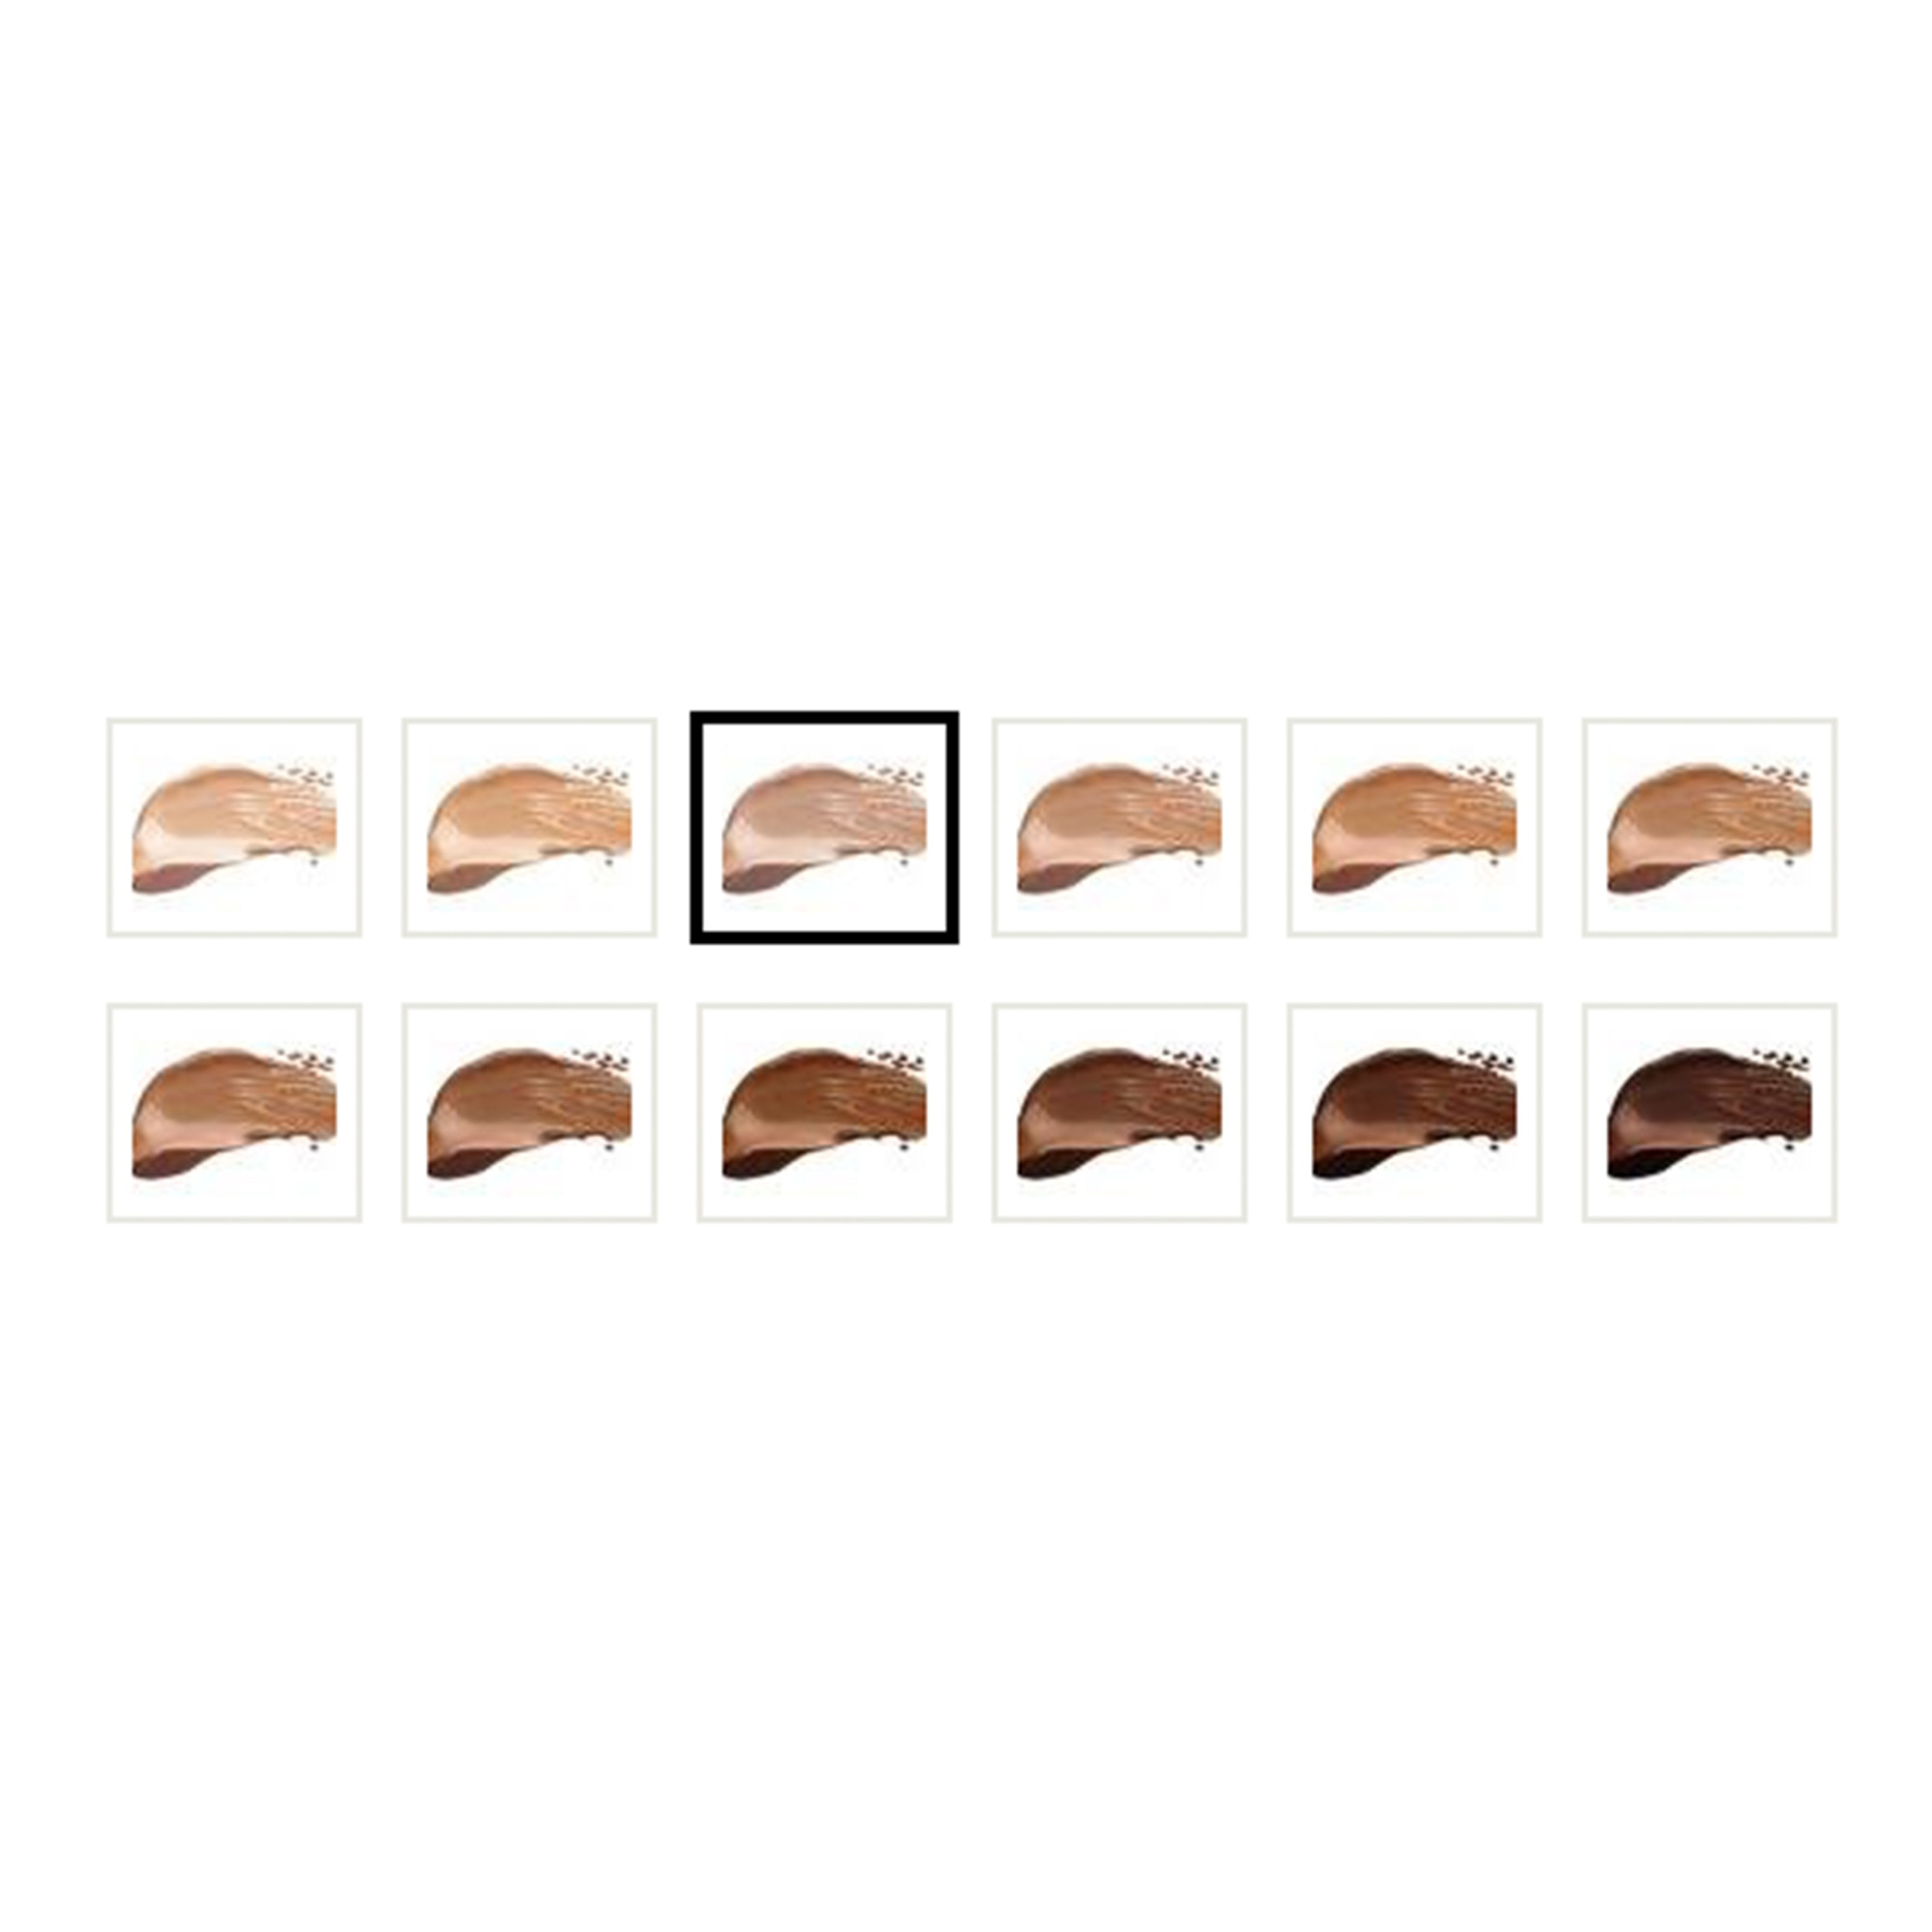 ABSOLUTE NEW YORKFlawless HD Foundation Beige 28g,FoundationACARE1